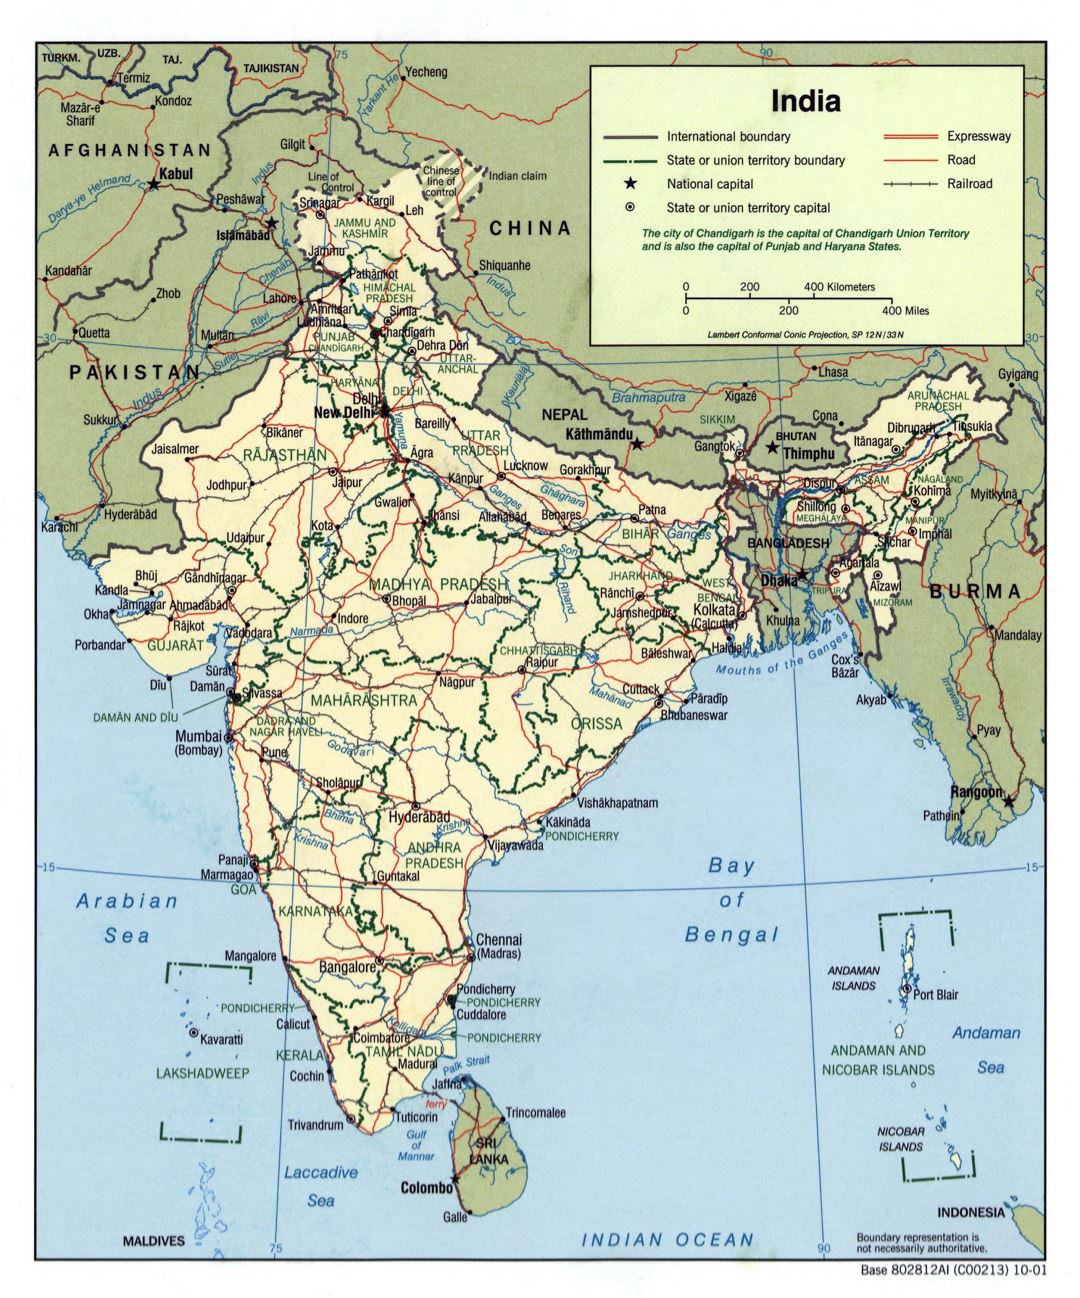 Large scale political and administrative map of India with roads, railroads and major cities - 2001